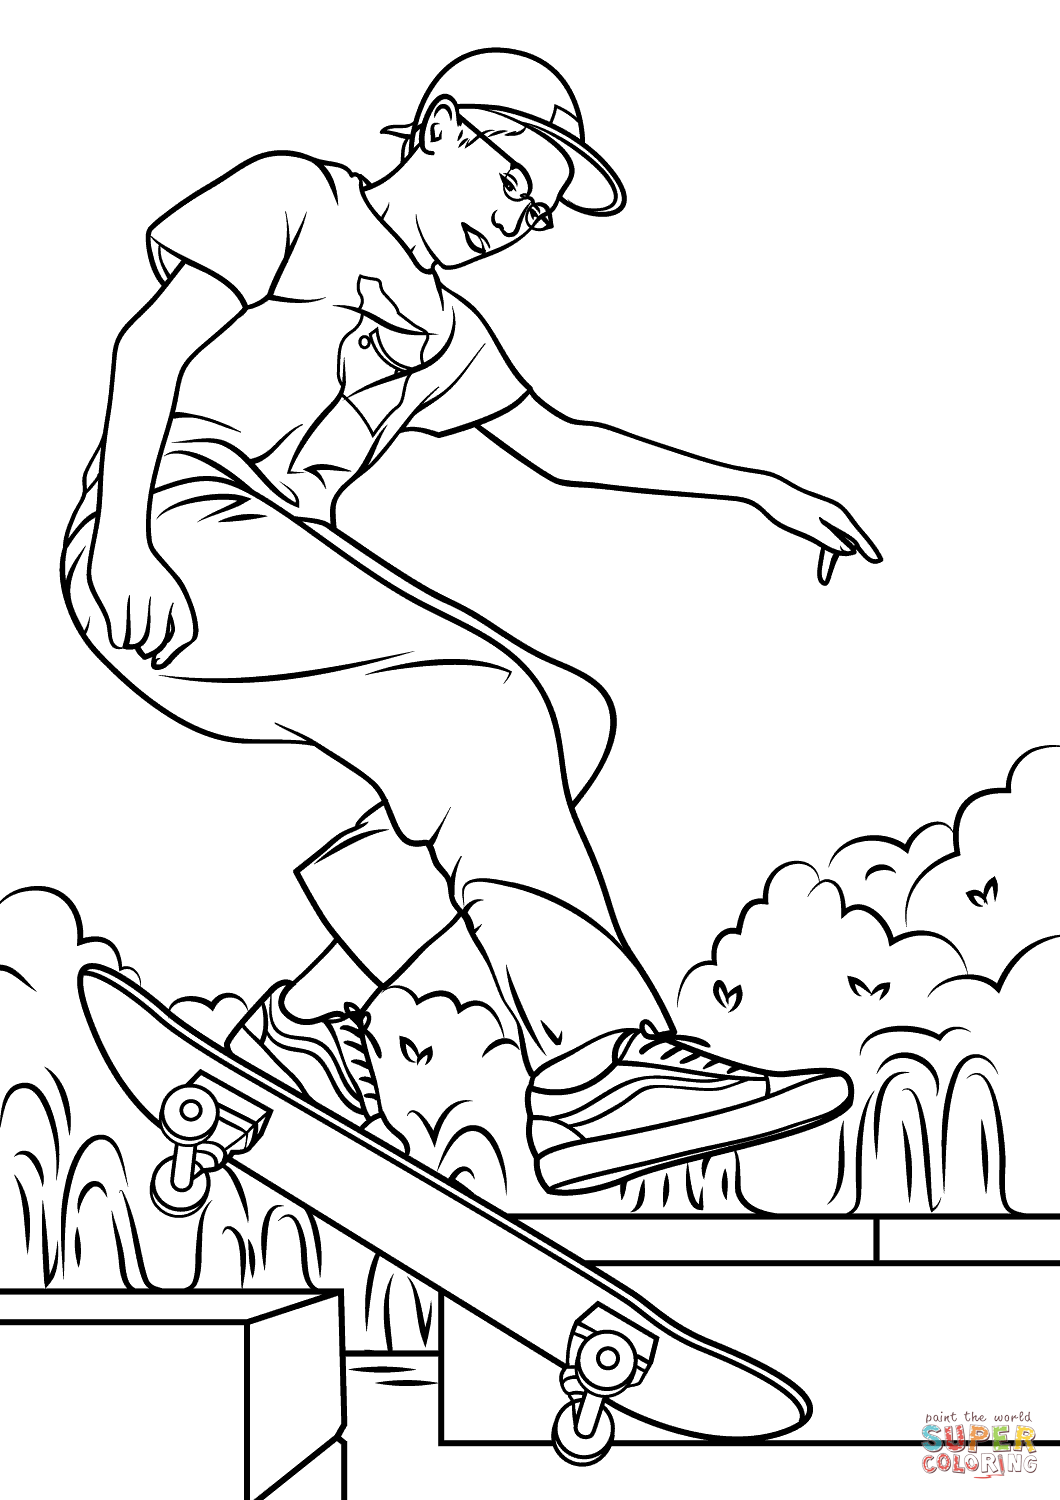 1060x1500 Boy Skateboarding Coloring Page Free Printable Coloring Pages